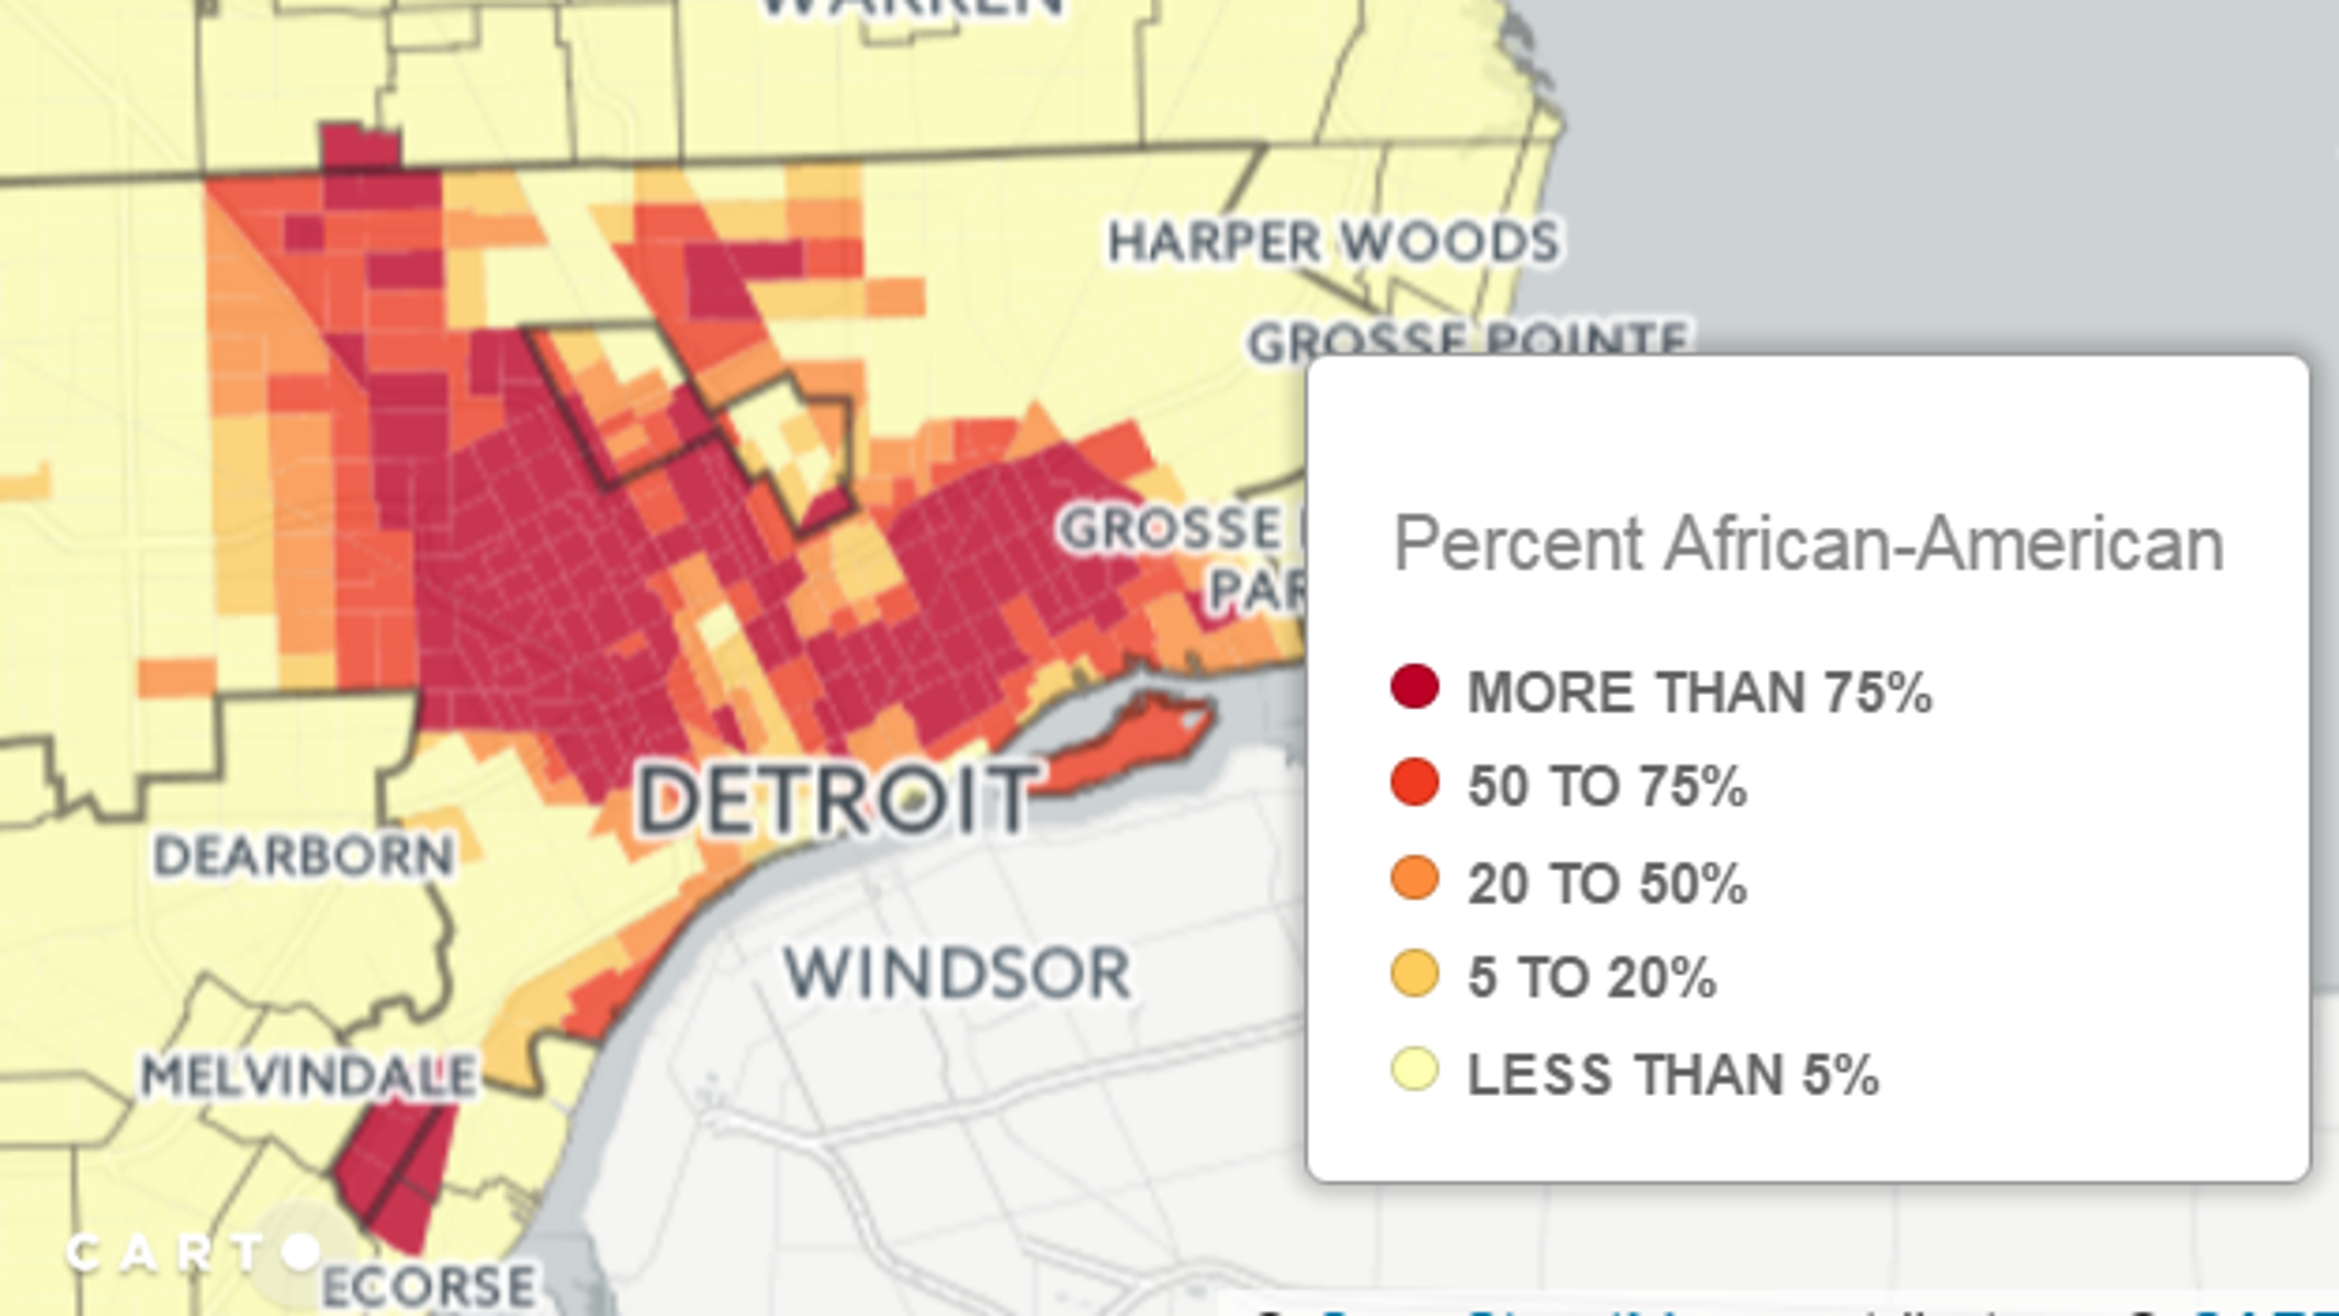 The Intersection: Housing Conditions and Segregation [MAPS ... on memphis map, united states map, duluth map, chicago map, toronto map, henry ford hospital map, royal oak map, great lakes map, cincinnati map, compton map, michigan map, las vegas map, pittsburgh map, atlanta map, quebec map, baltimore map, highland park map, usa map, st louis on map, new york map,